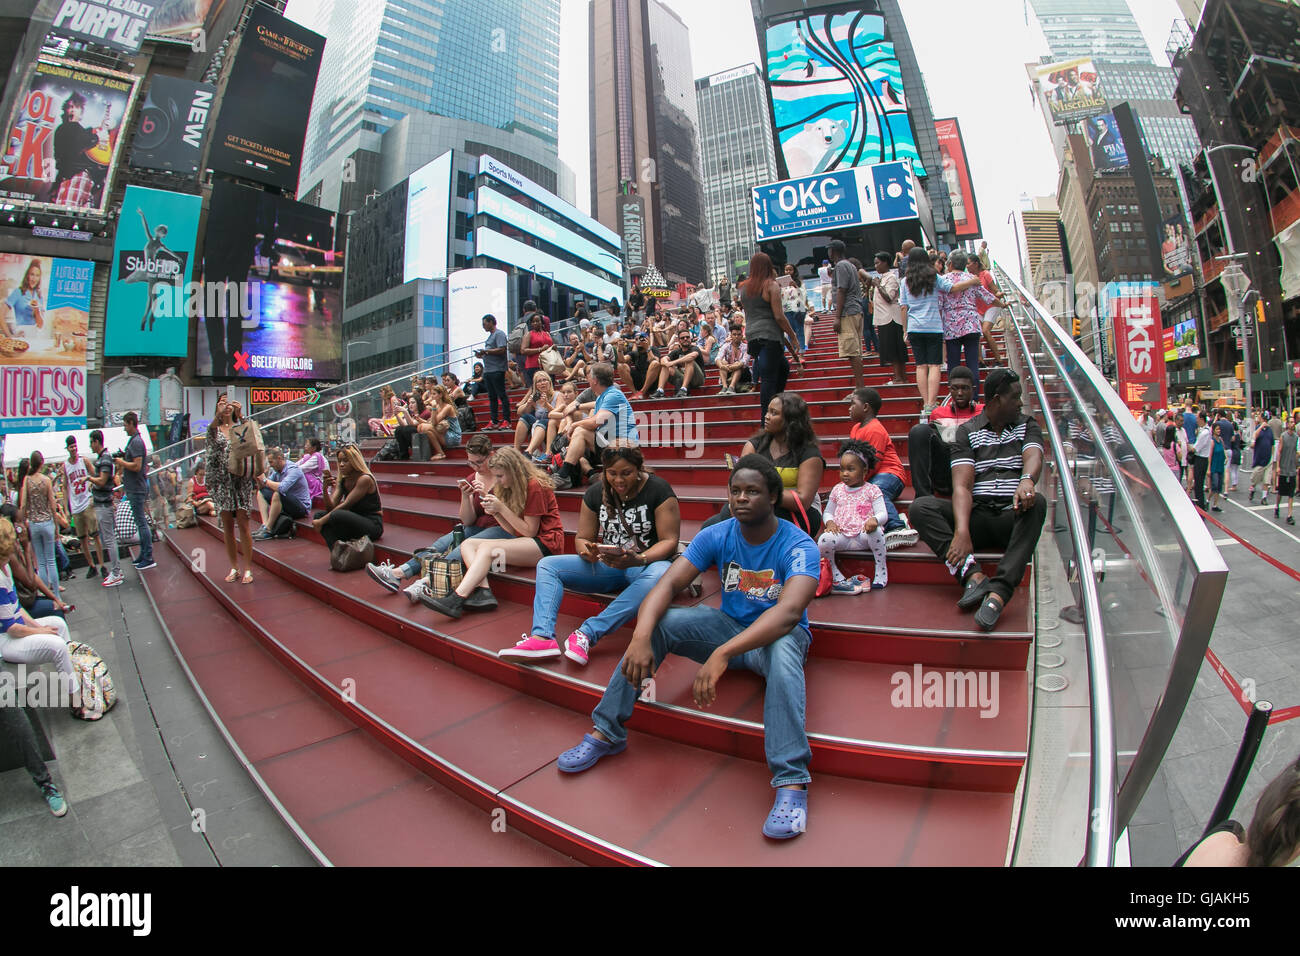 People are sitting on the red steps over a ticket booth on Times Square. - Stock Image